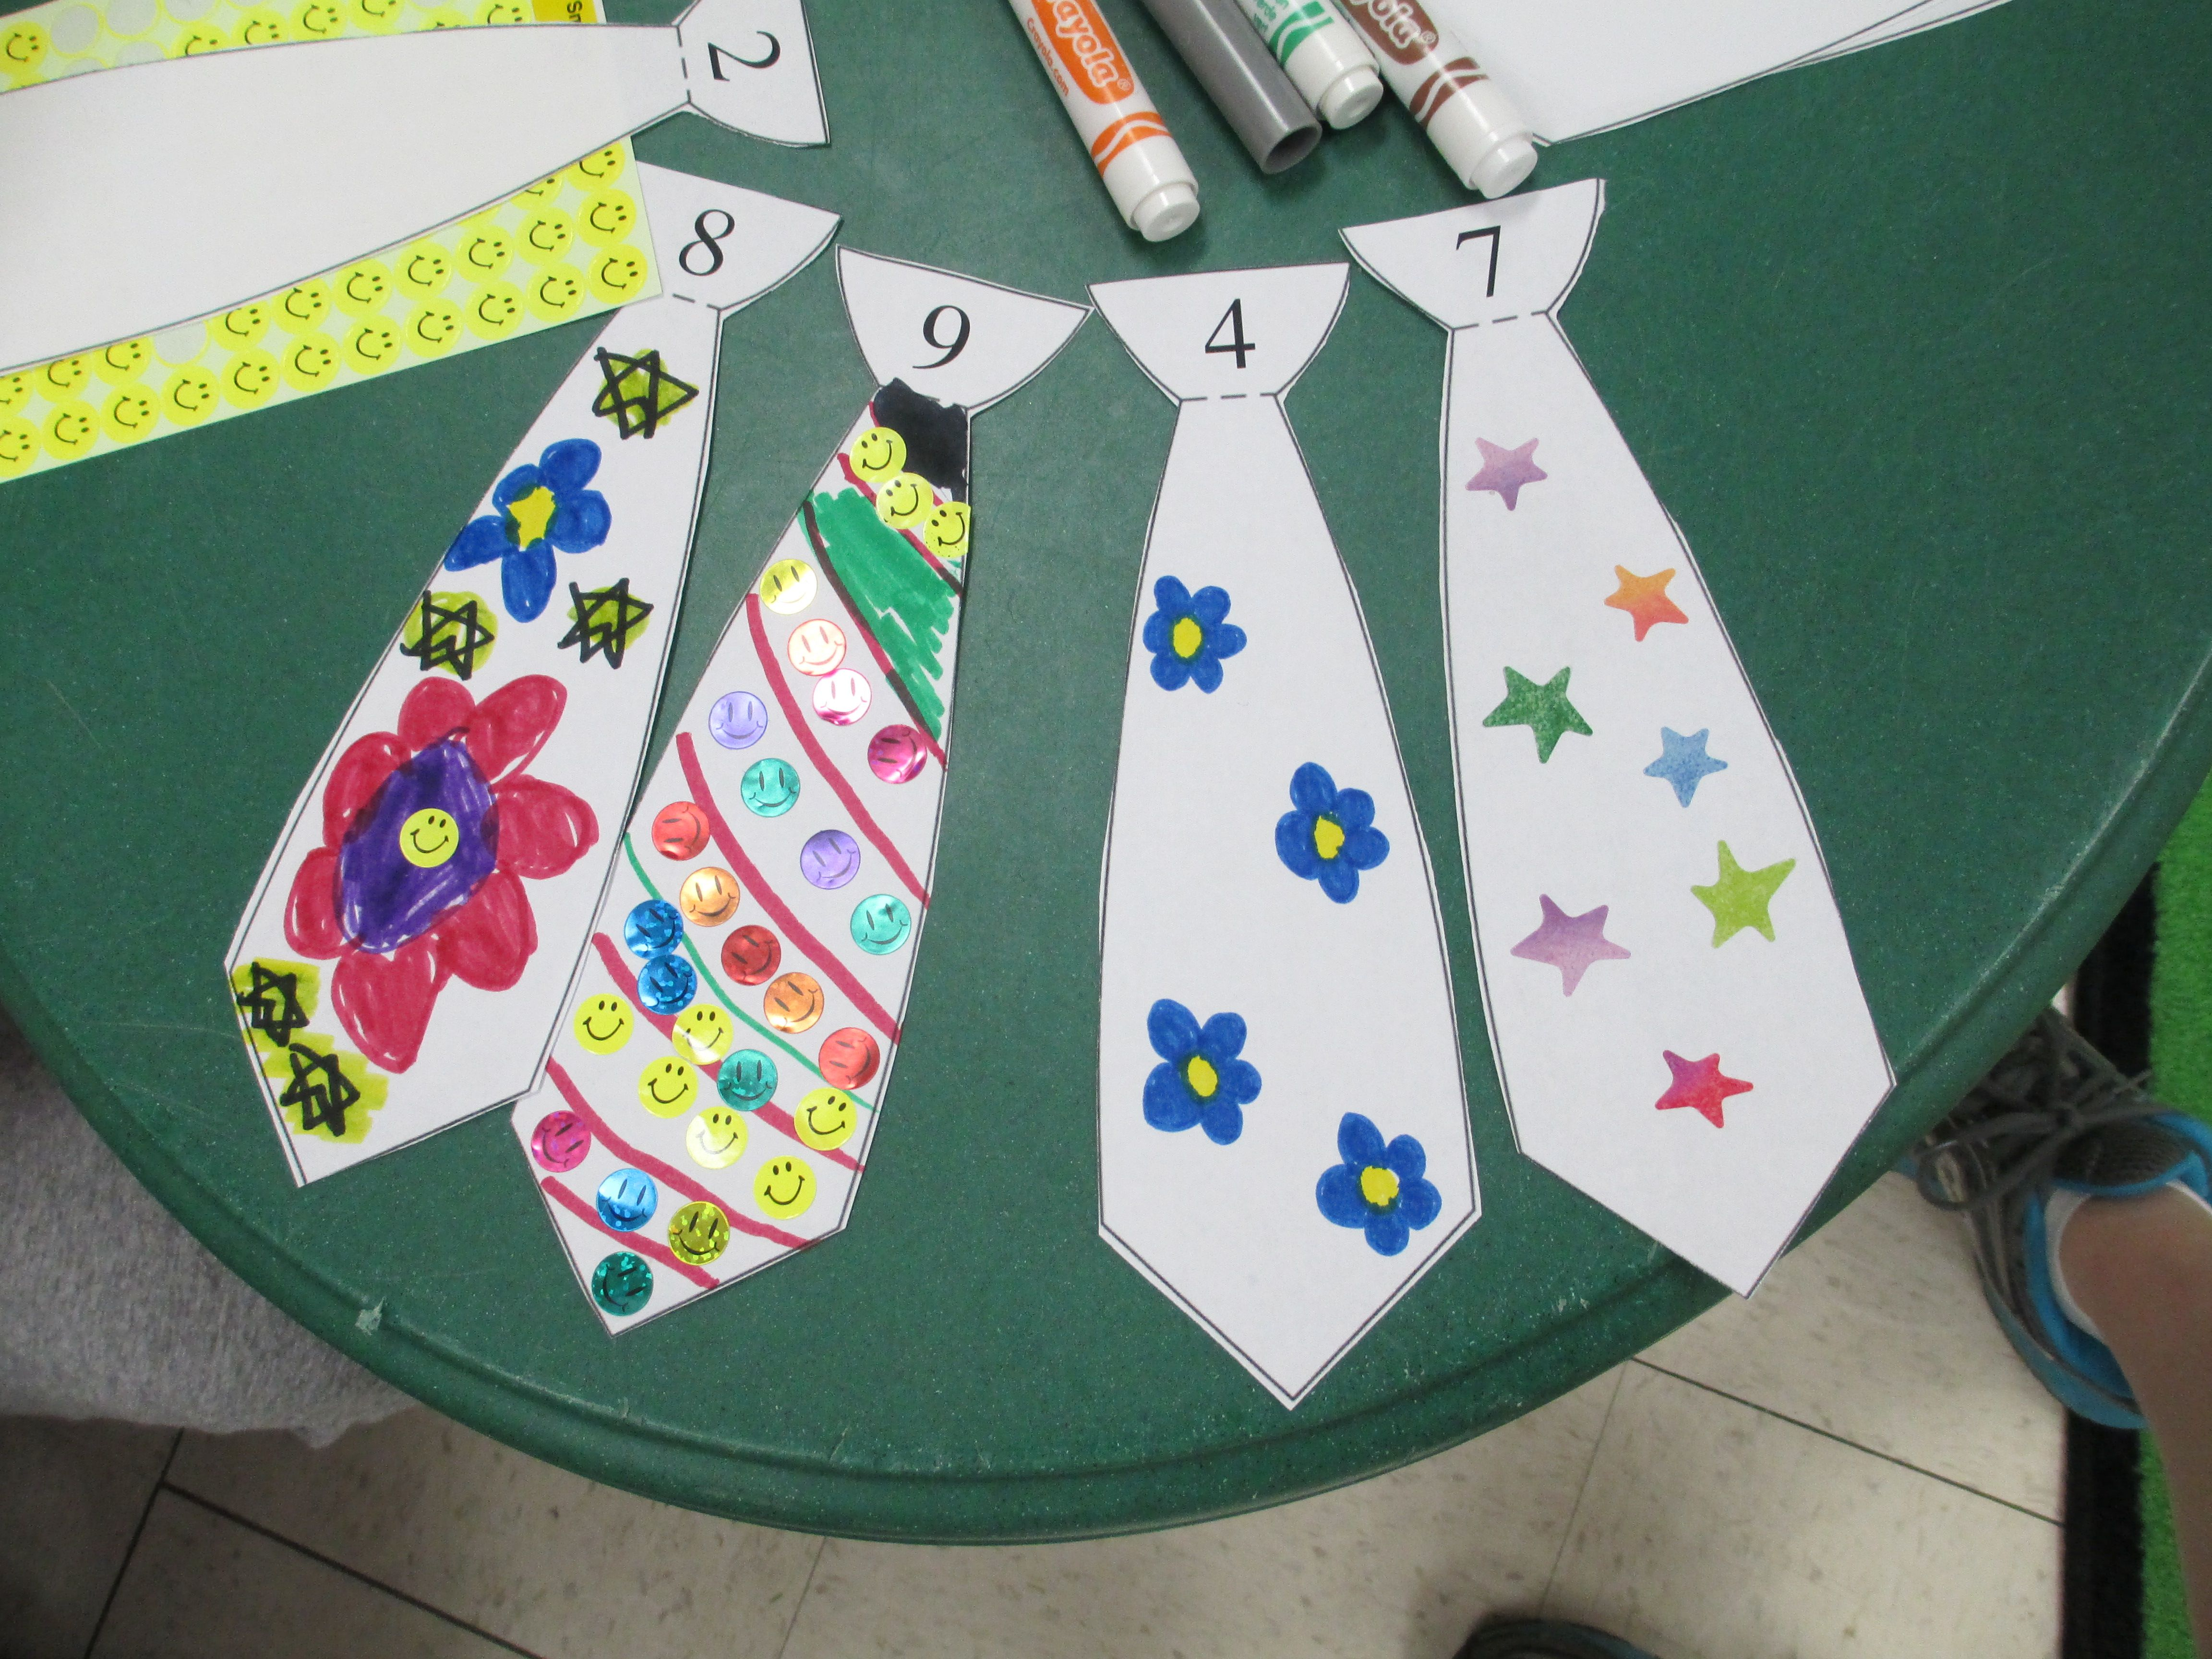 A new HomePlay pin from The Pa-Paw Patch!  Counting Ties Math Activity for Father's Day.  Kids can decorate the ties with the correct number of drawings or stickers that corresponds to the number on the tie.  Or use counters to make it reusable!